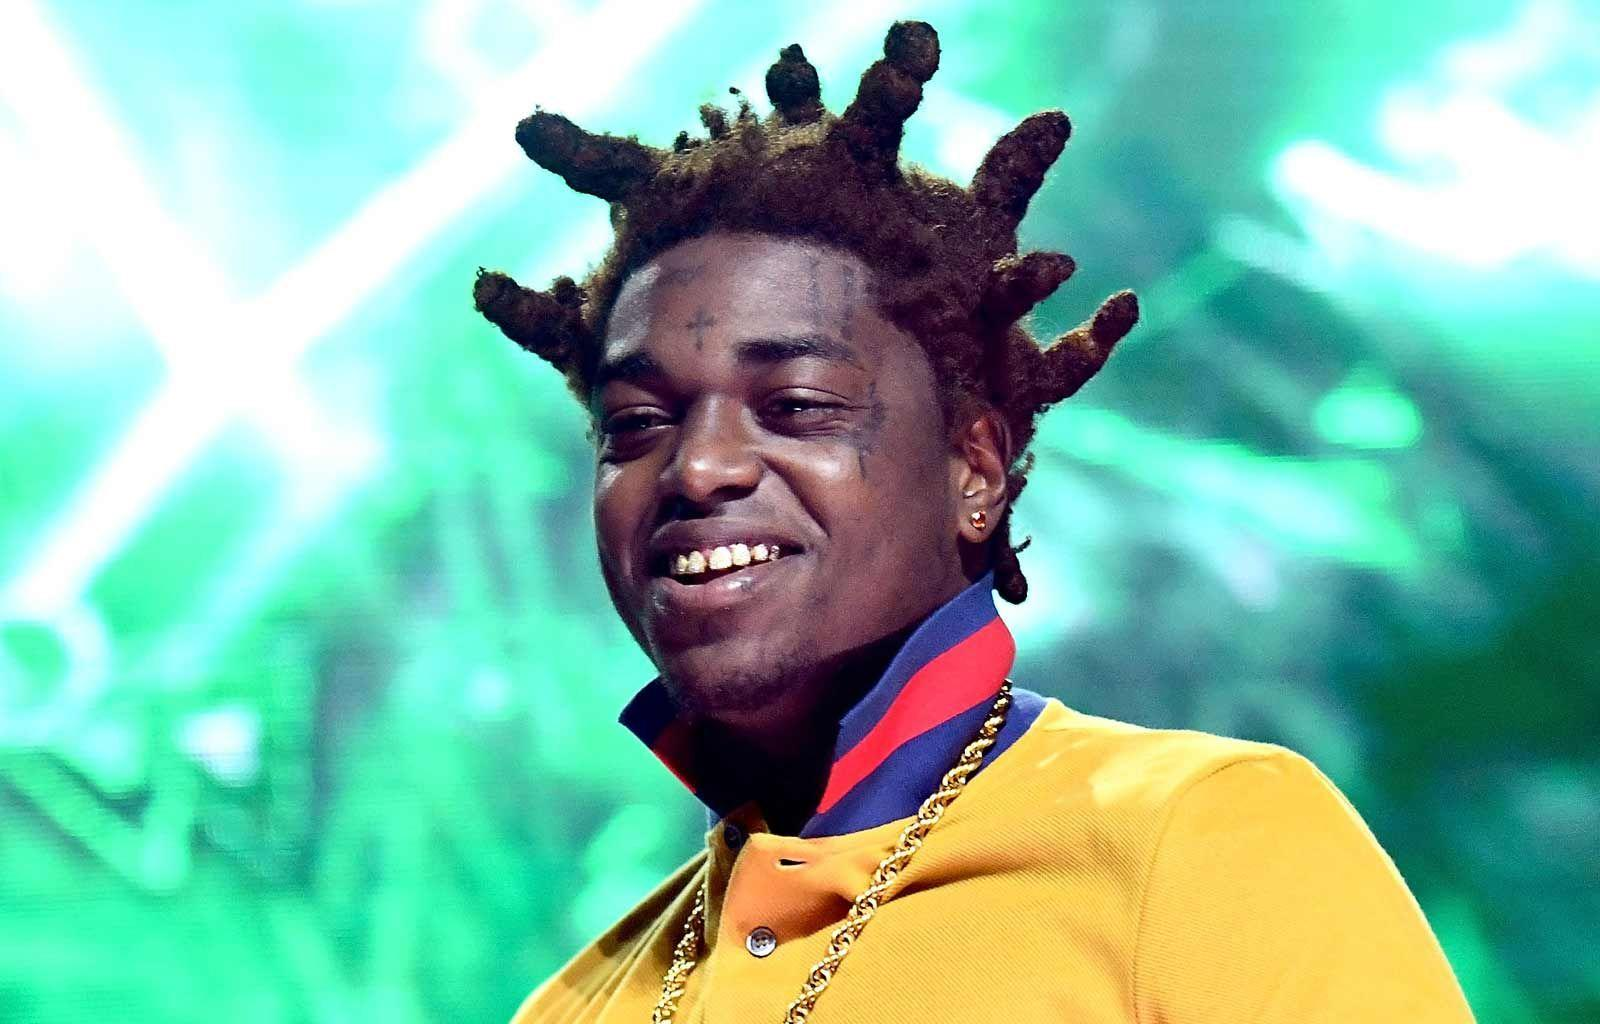 Kodak Black Was Transferred To A New Prison After He Accused His Former Prison Of Torture